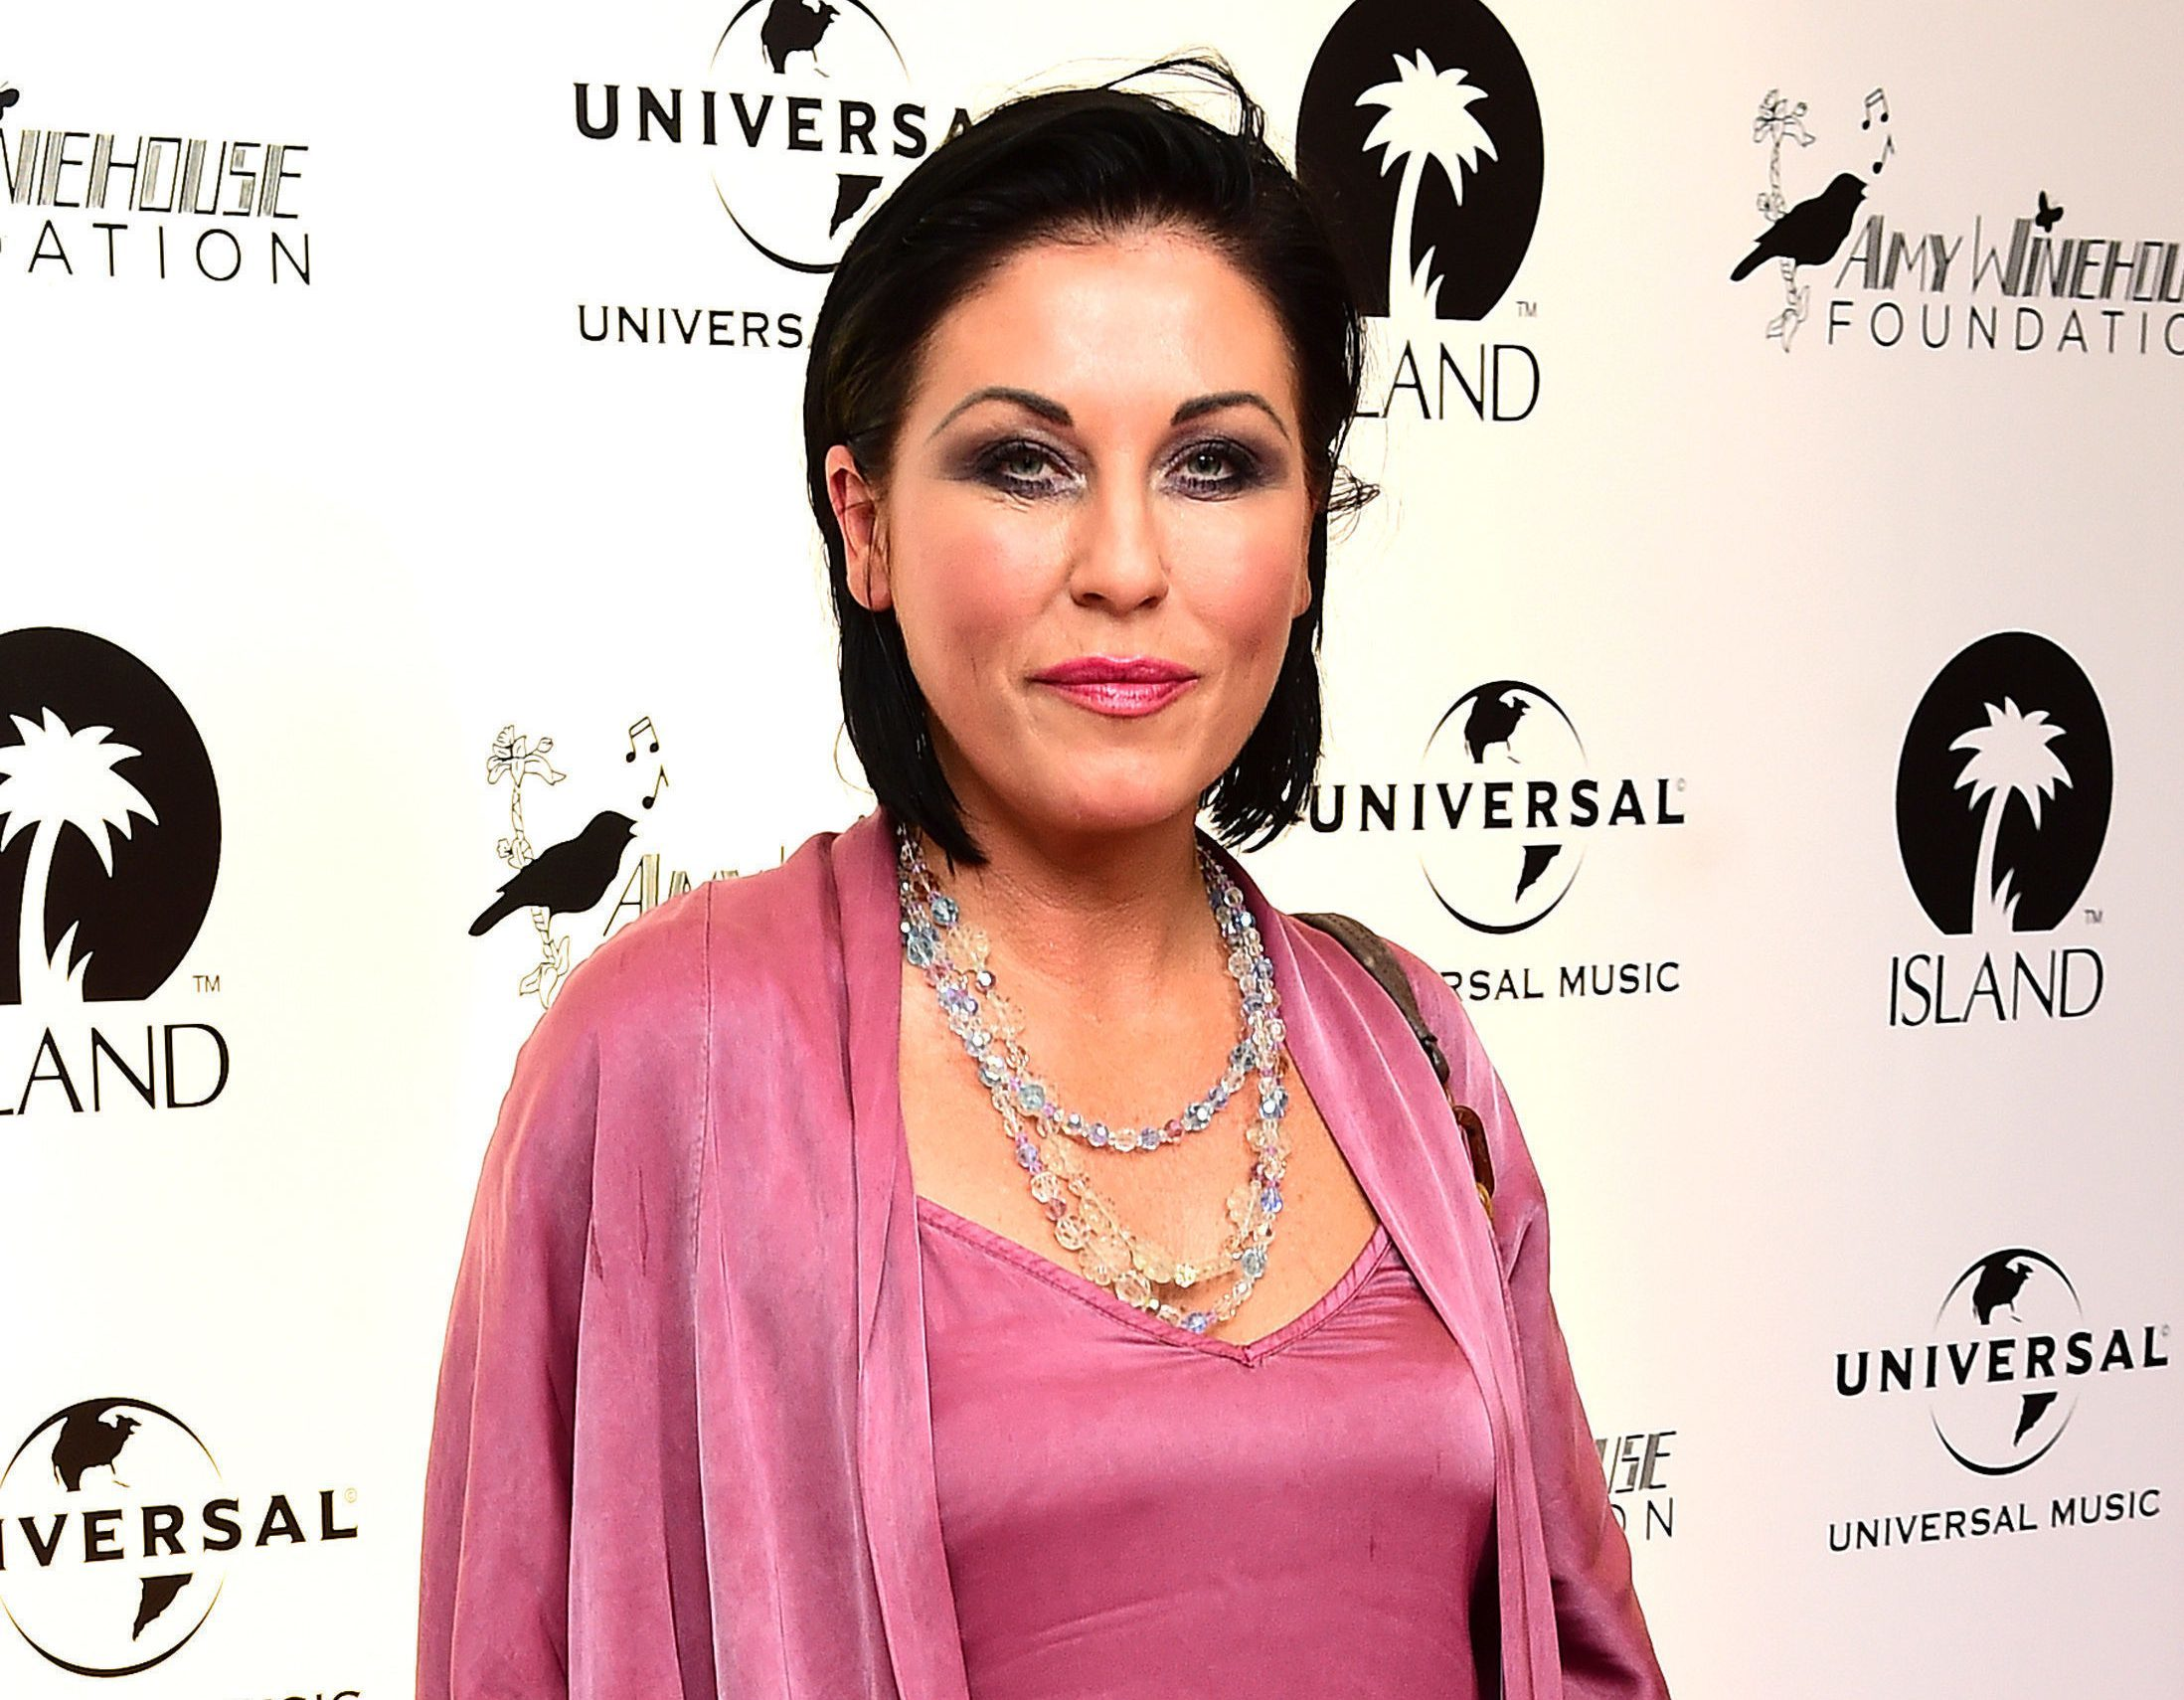 """EastEnders actress Jessie Wallace, who has said she is """"thrilled"""" to be returning to EastEnders as Kat Moon next year. (Ian West/PA Wire)"""